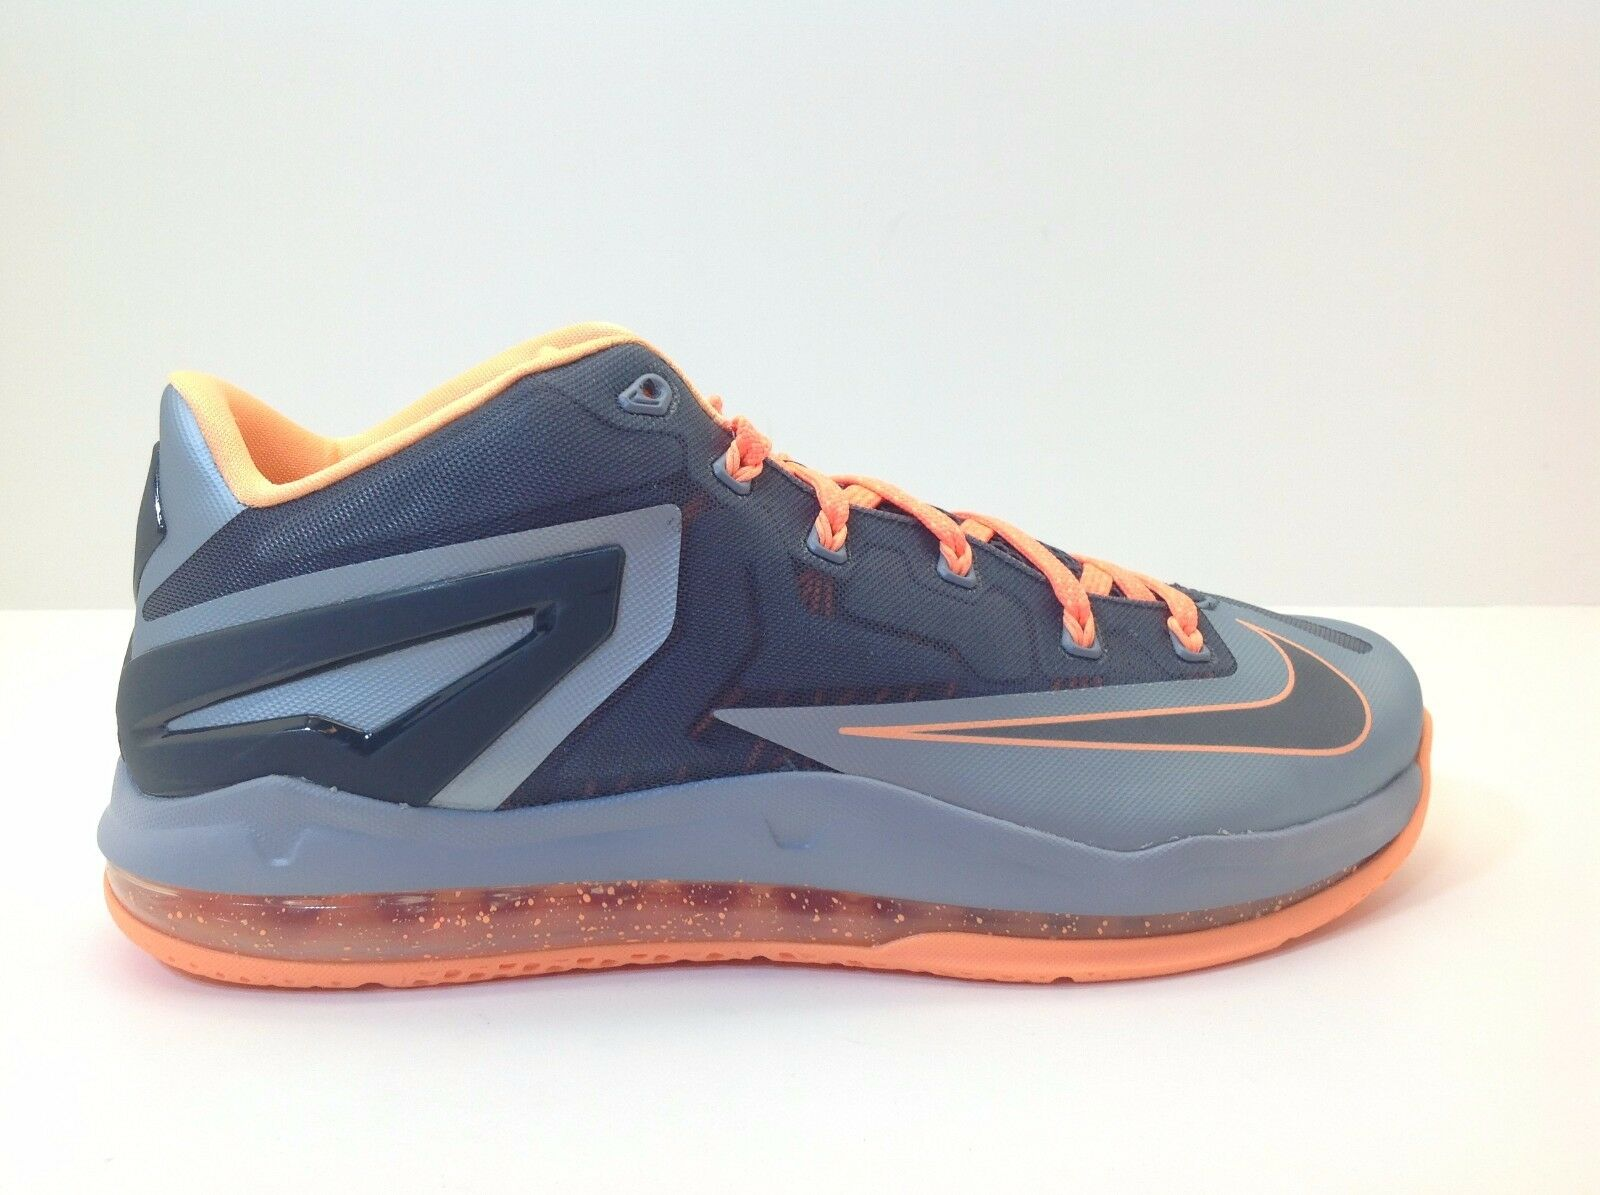 Nike Max Lebron XI Low Men's Size 10.5 and 11 Grey New in Box 642849 002